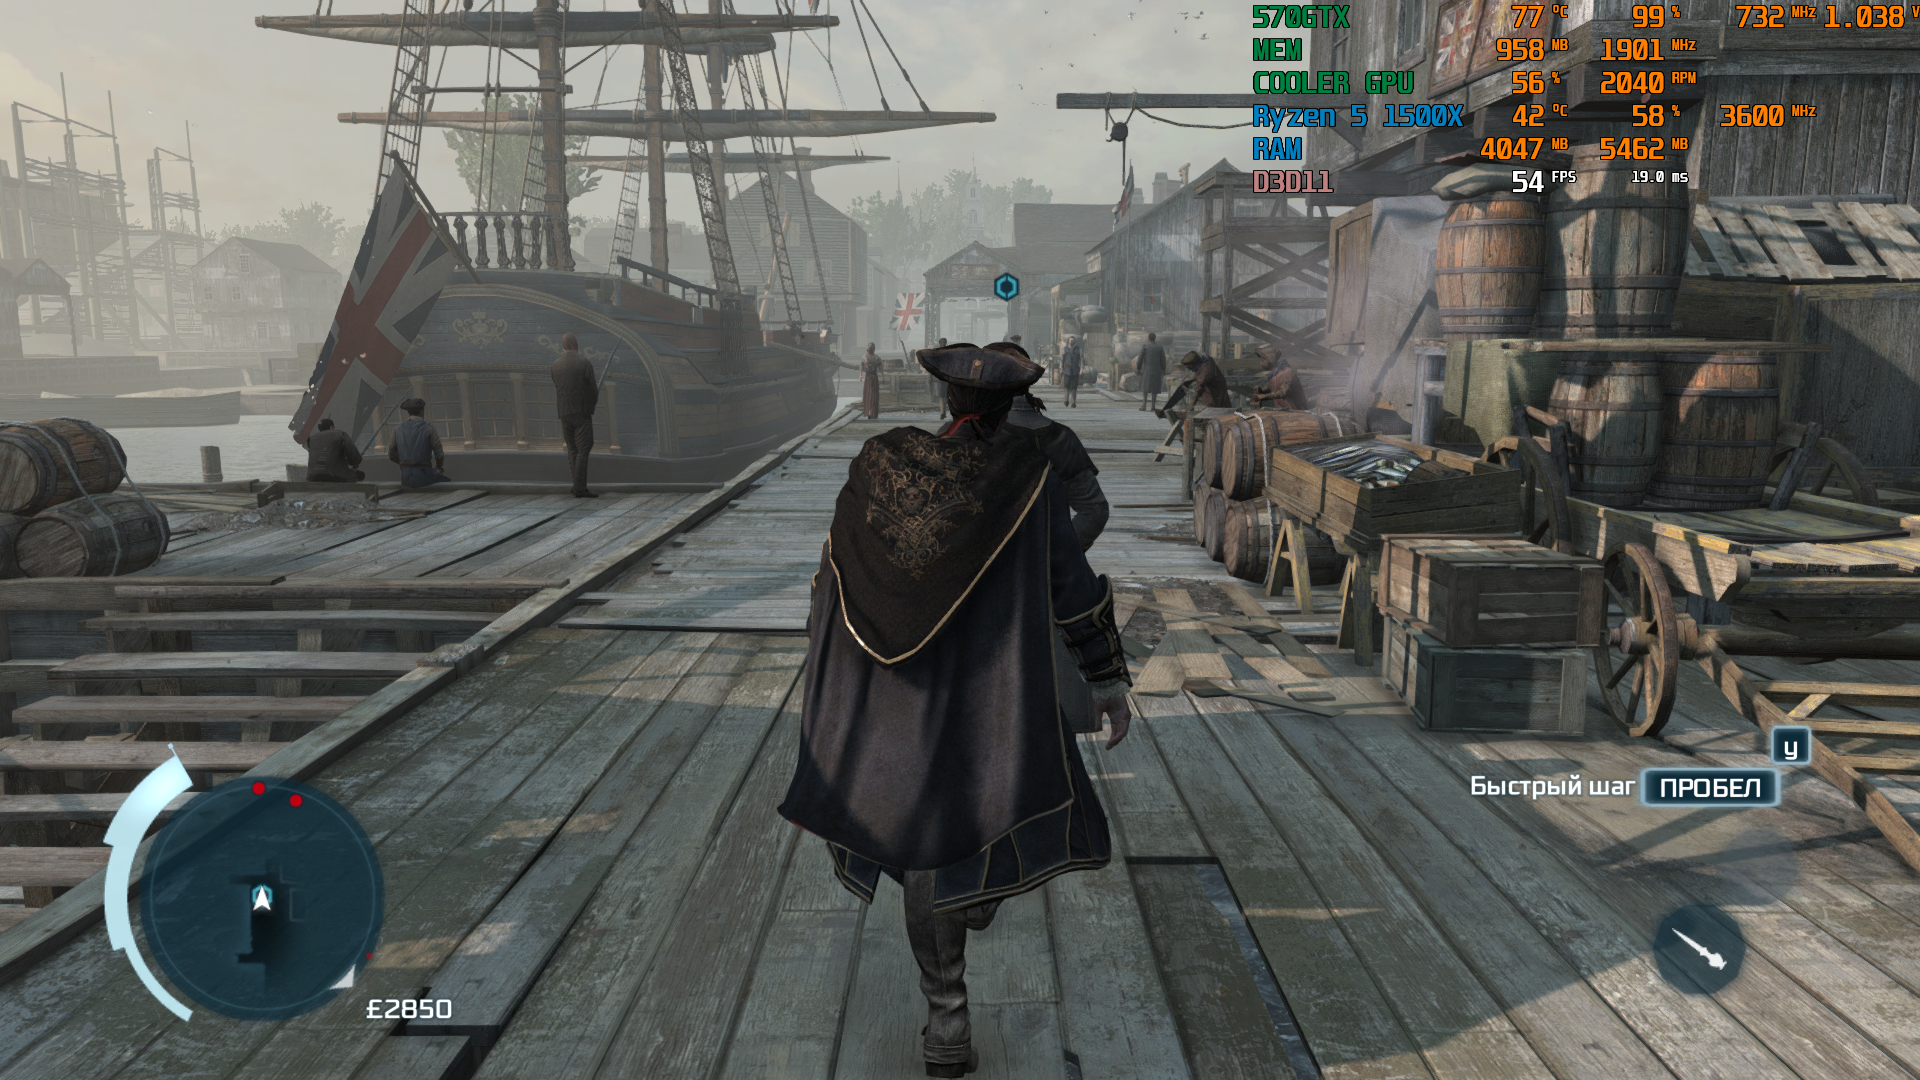 AC3SP_2018_09_21_22_49_13_166.png - Assassin's Creed 3